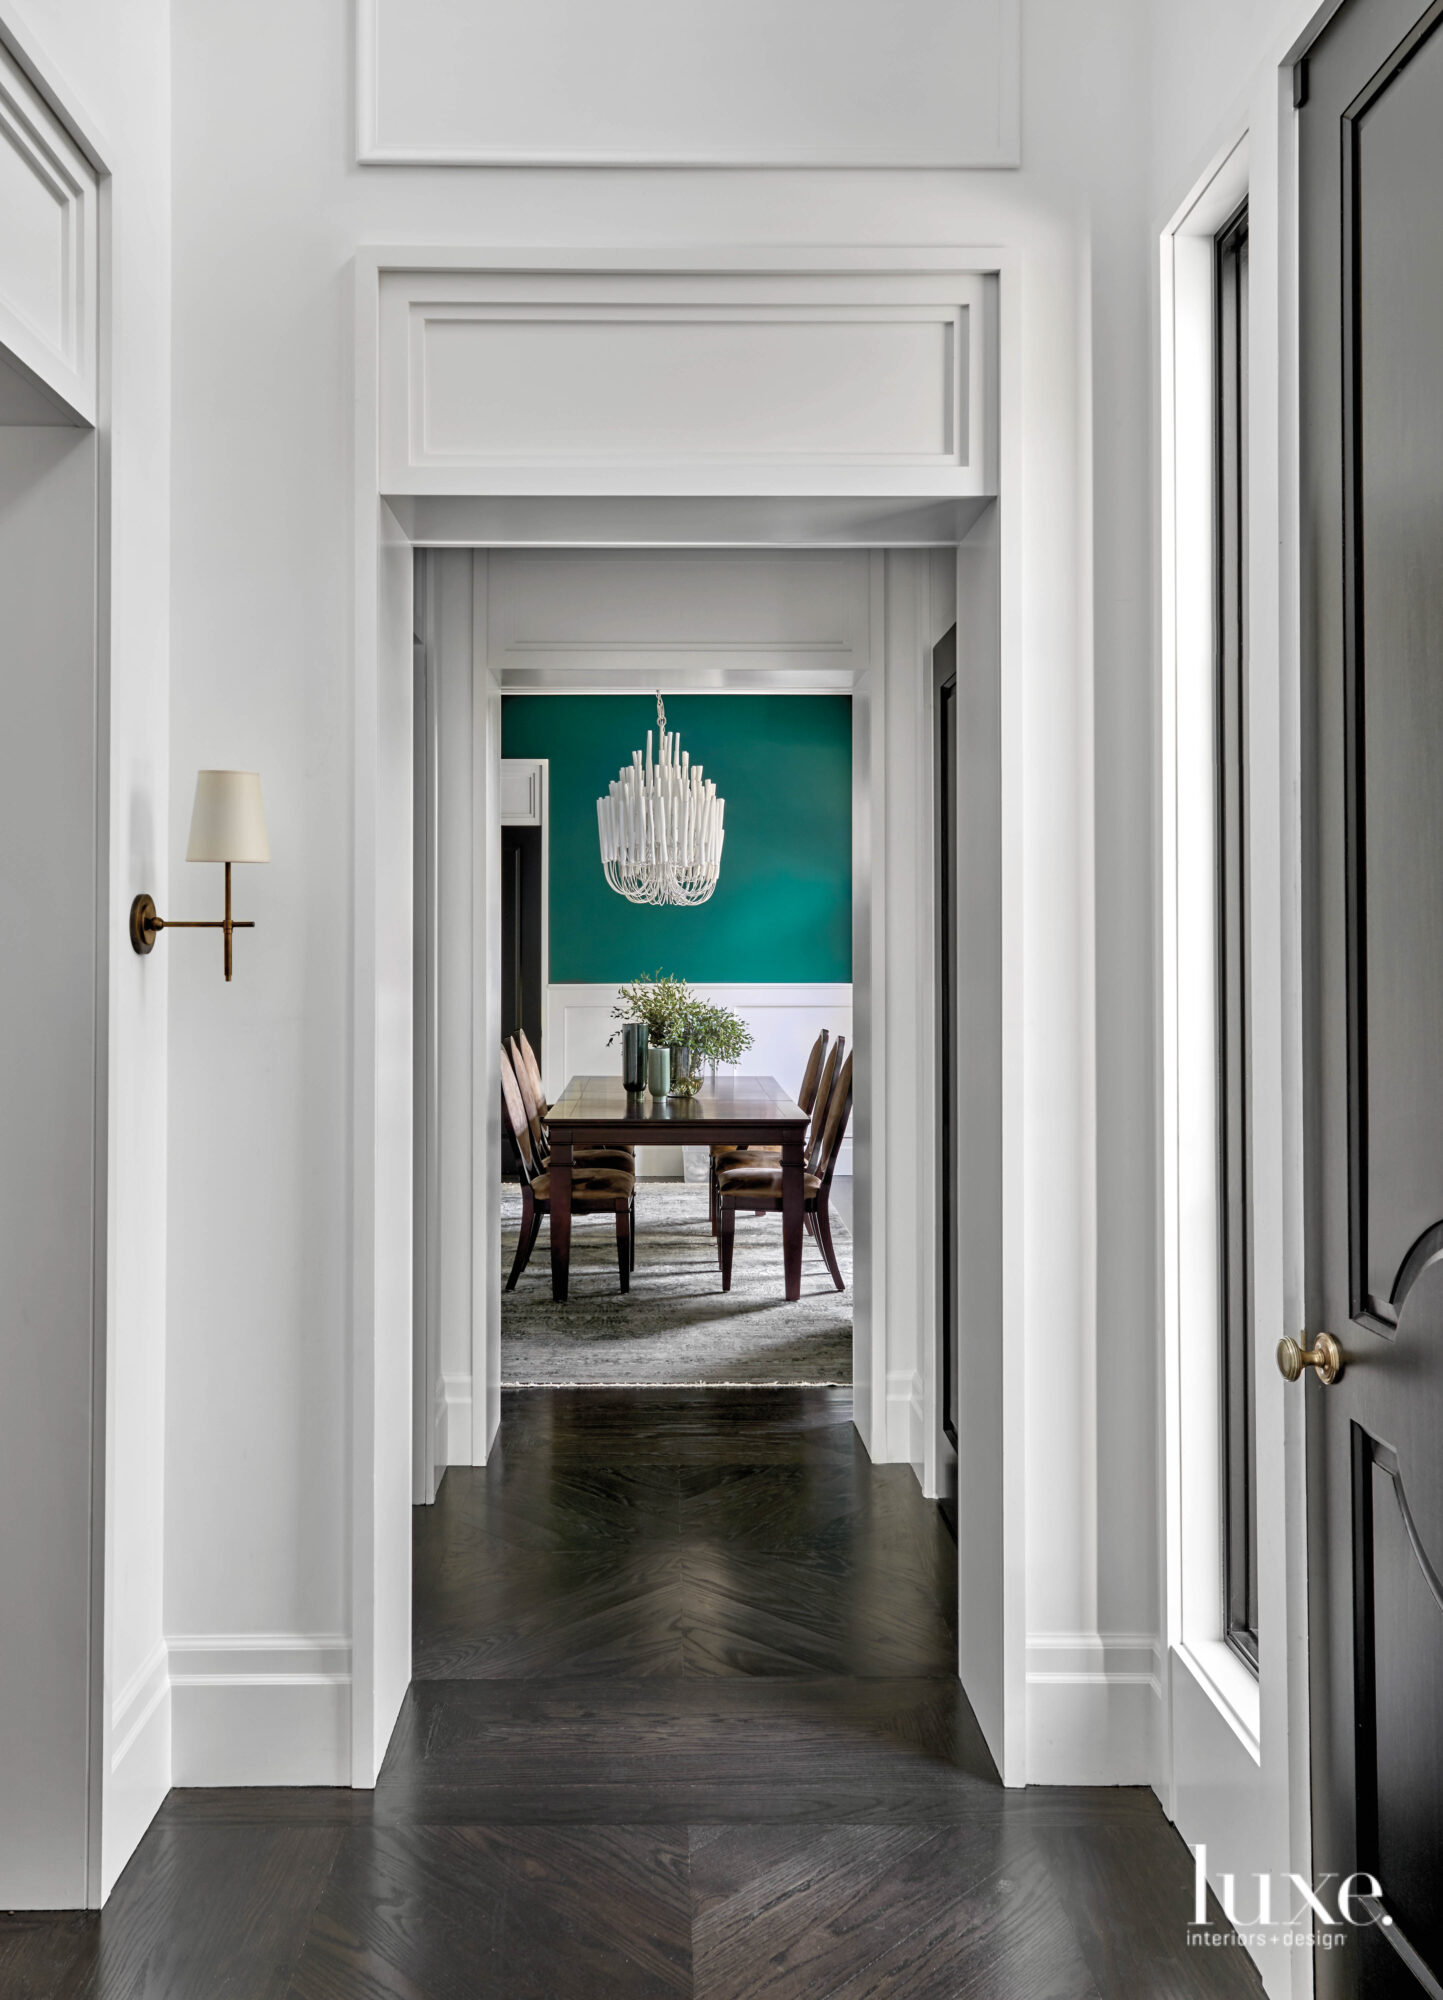 Dining room with teal green walls and a chandelier over the dining table.